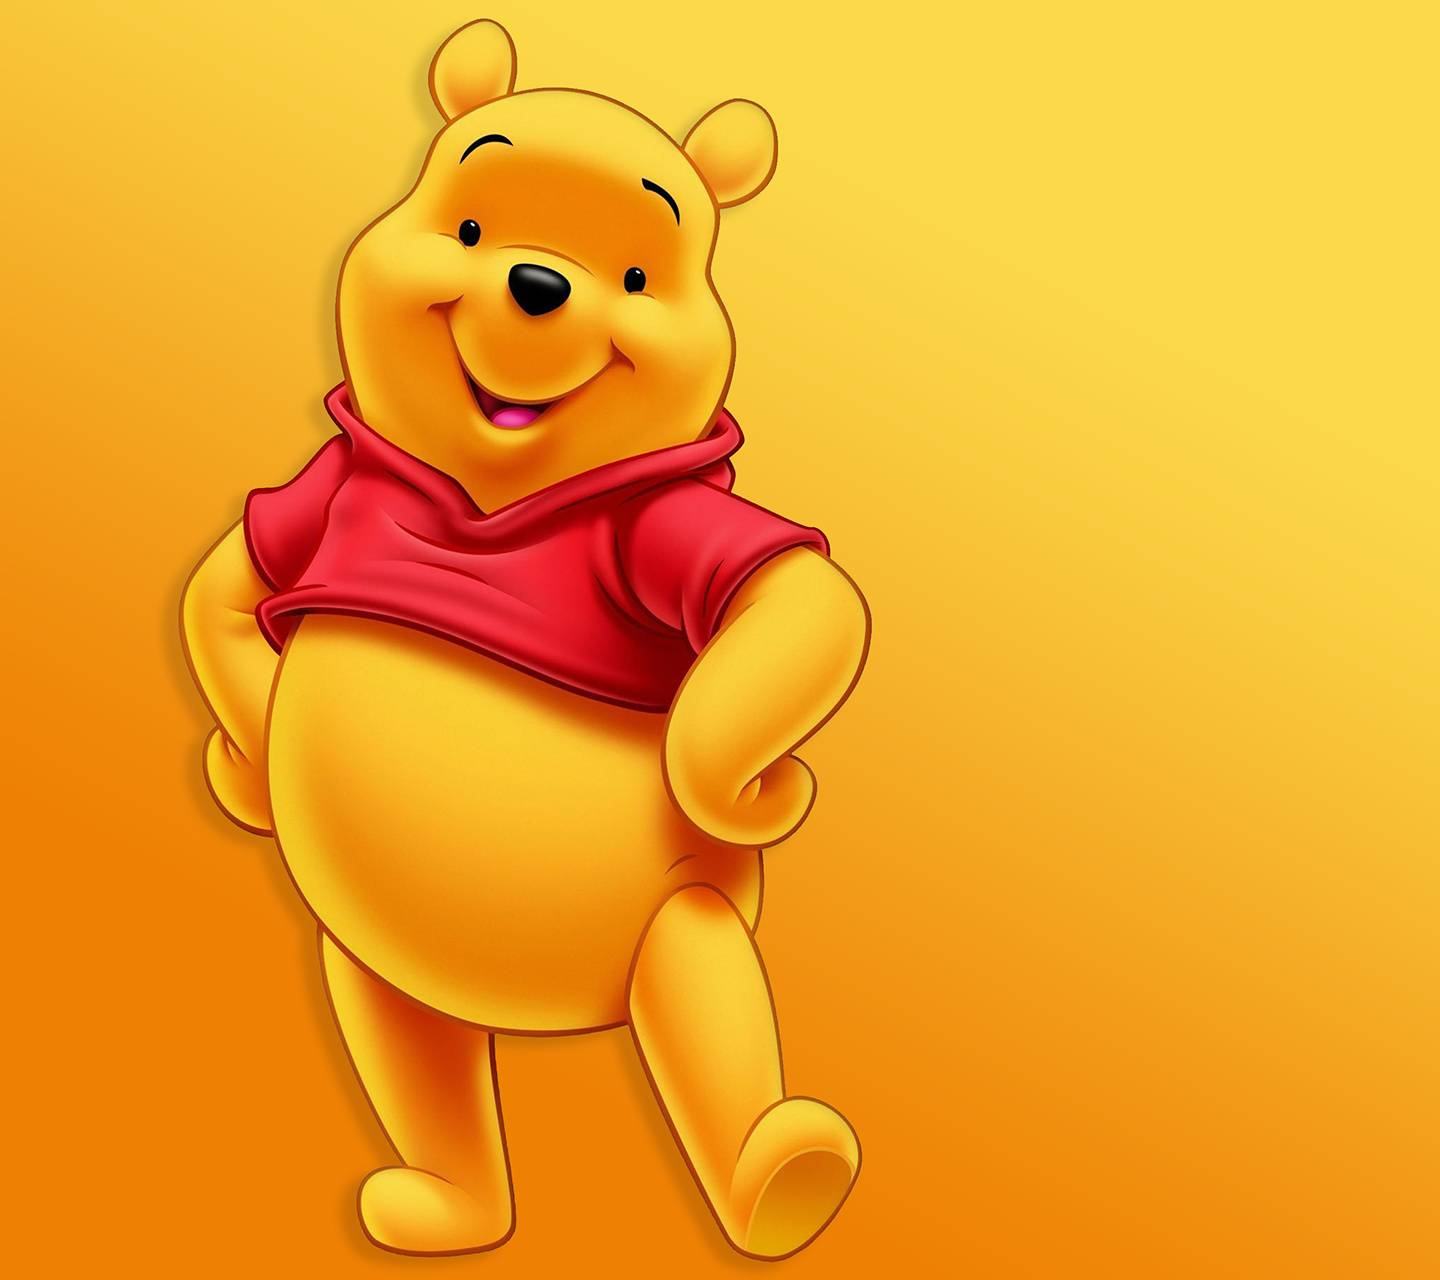 This is a photo of Ambitious Pooh Bear Images